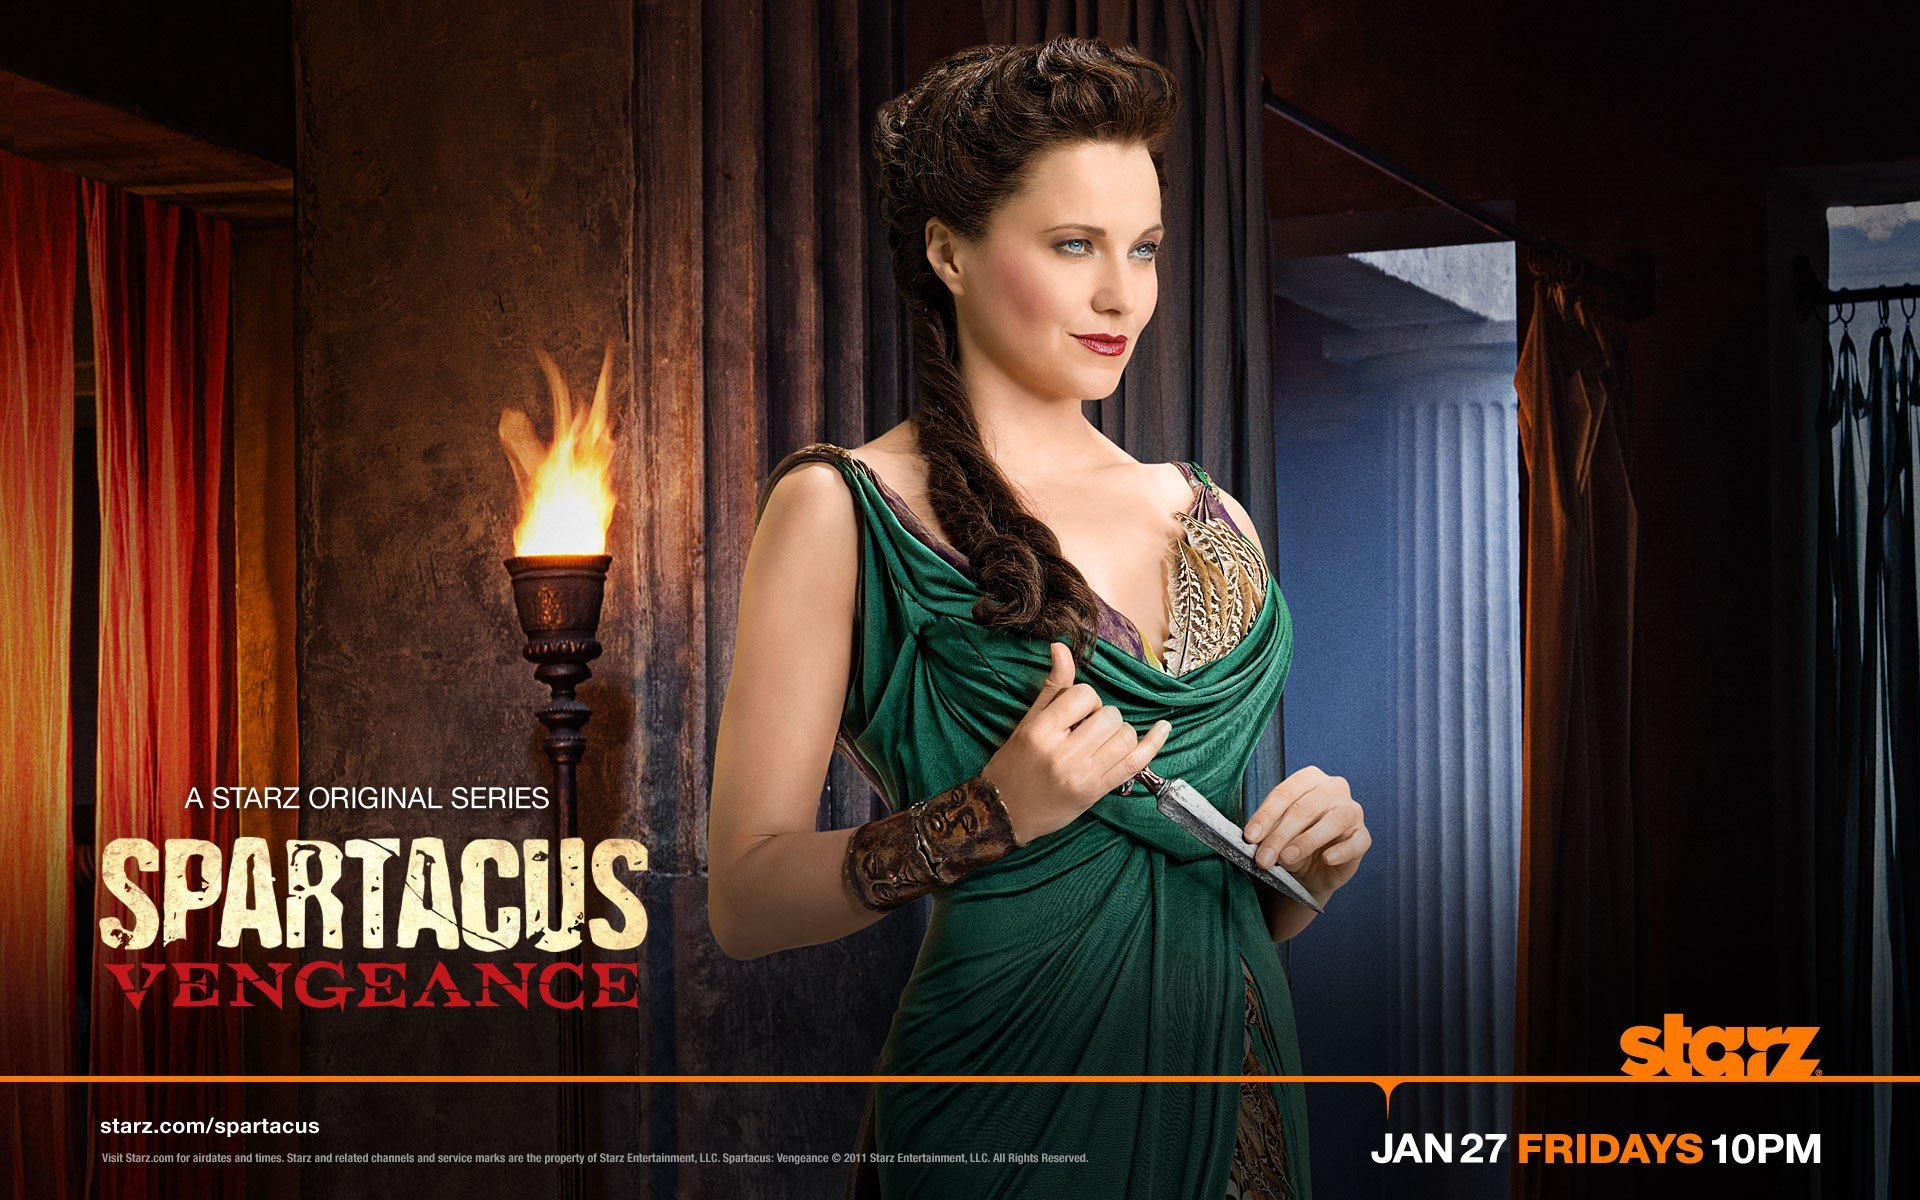 Lucy Lawless as Lucretia in Spartacus: Vengeance